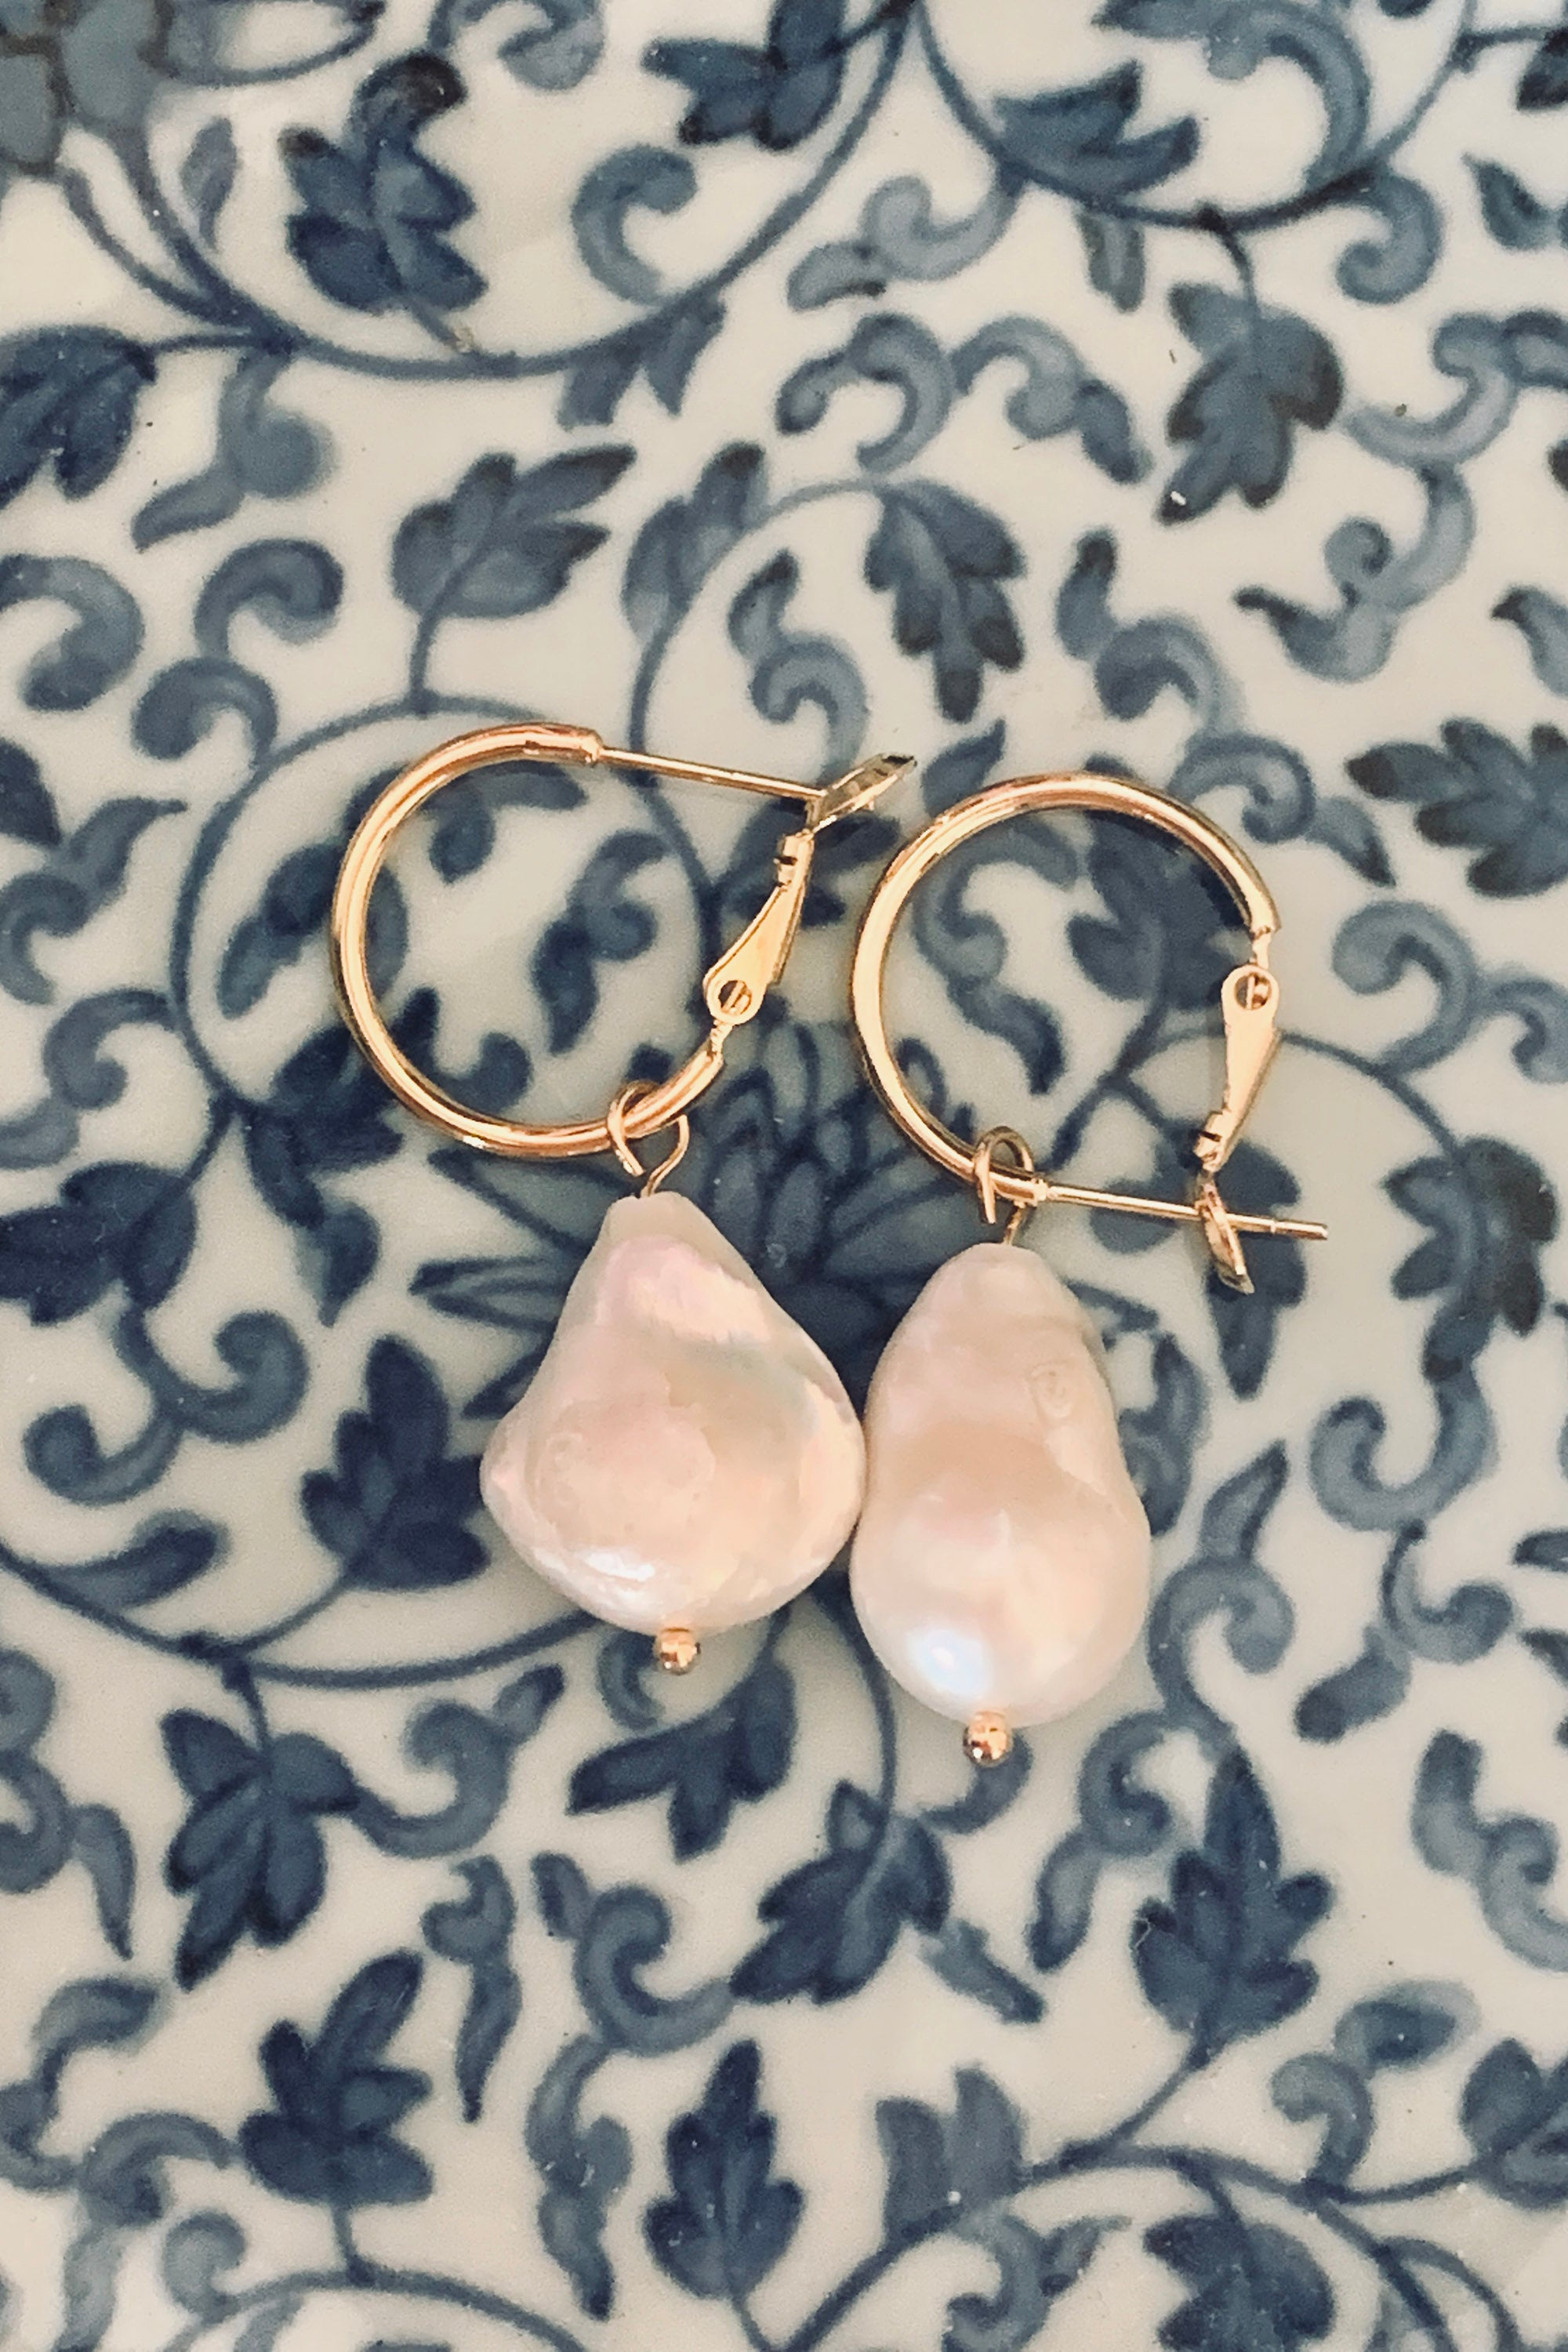 Iris earrings